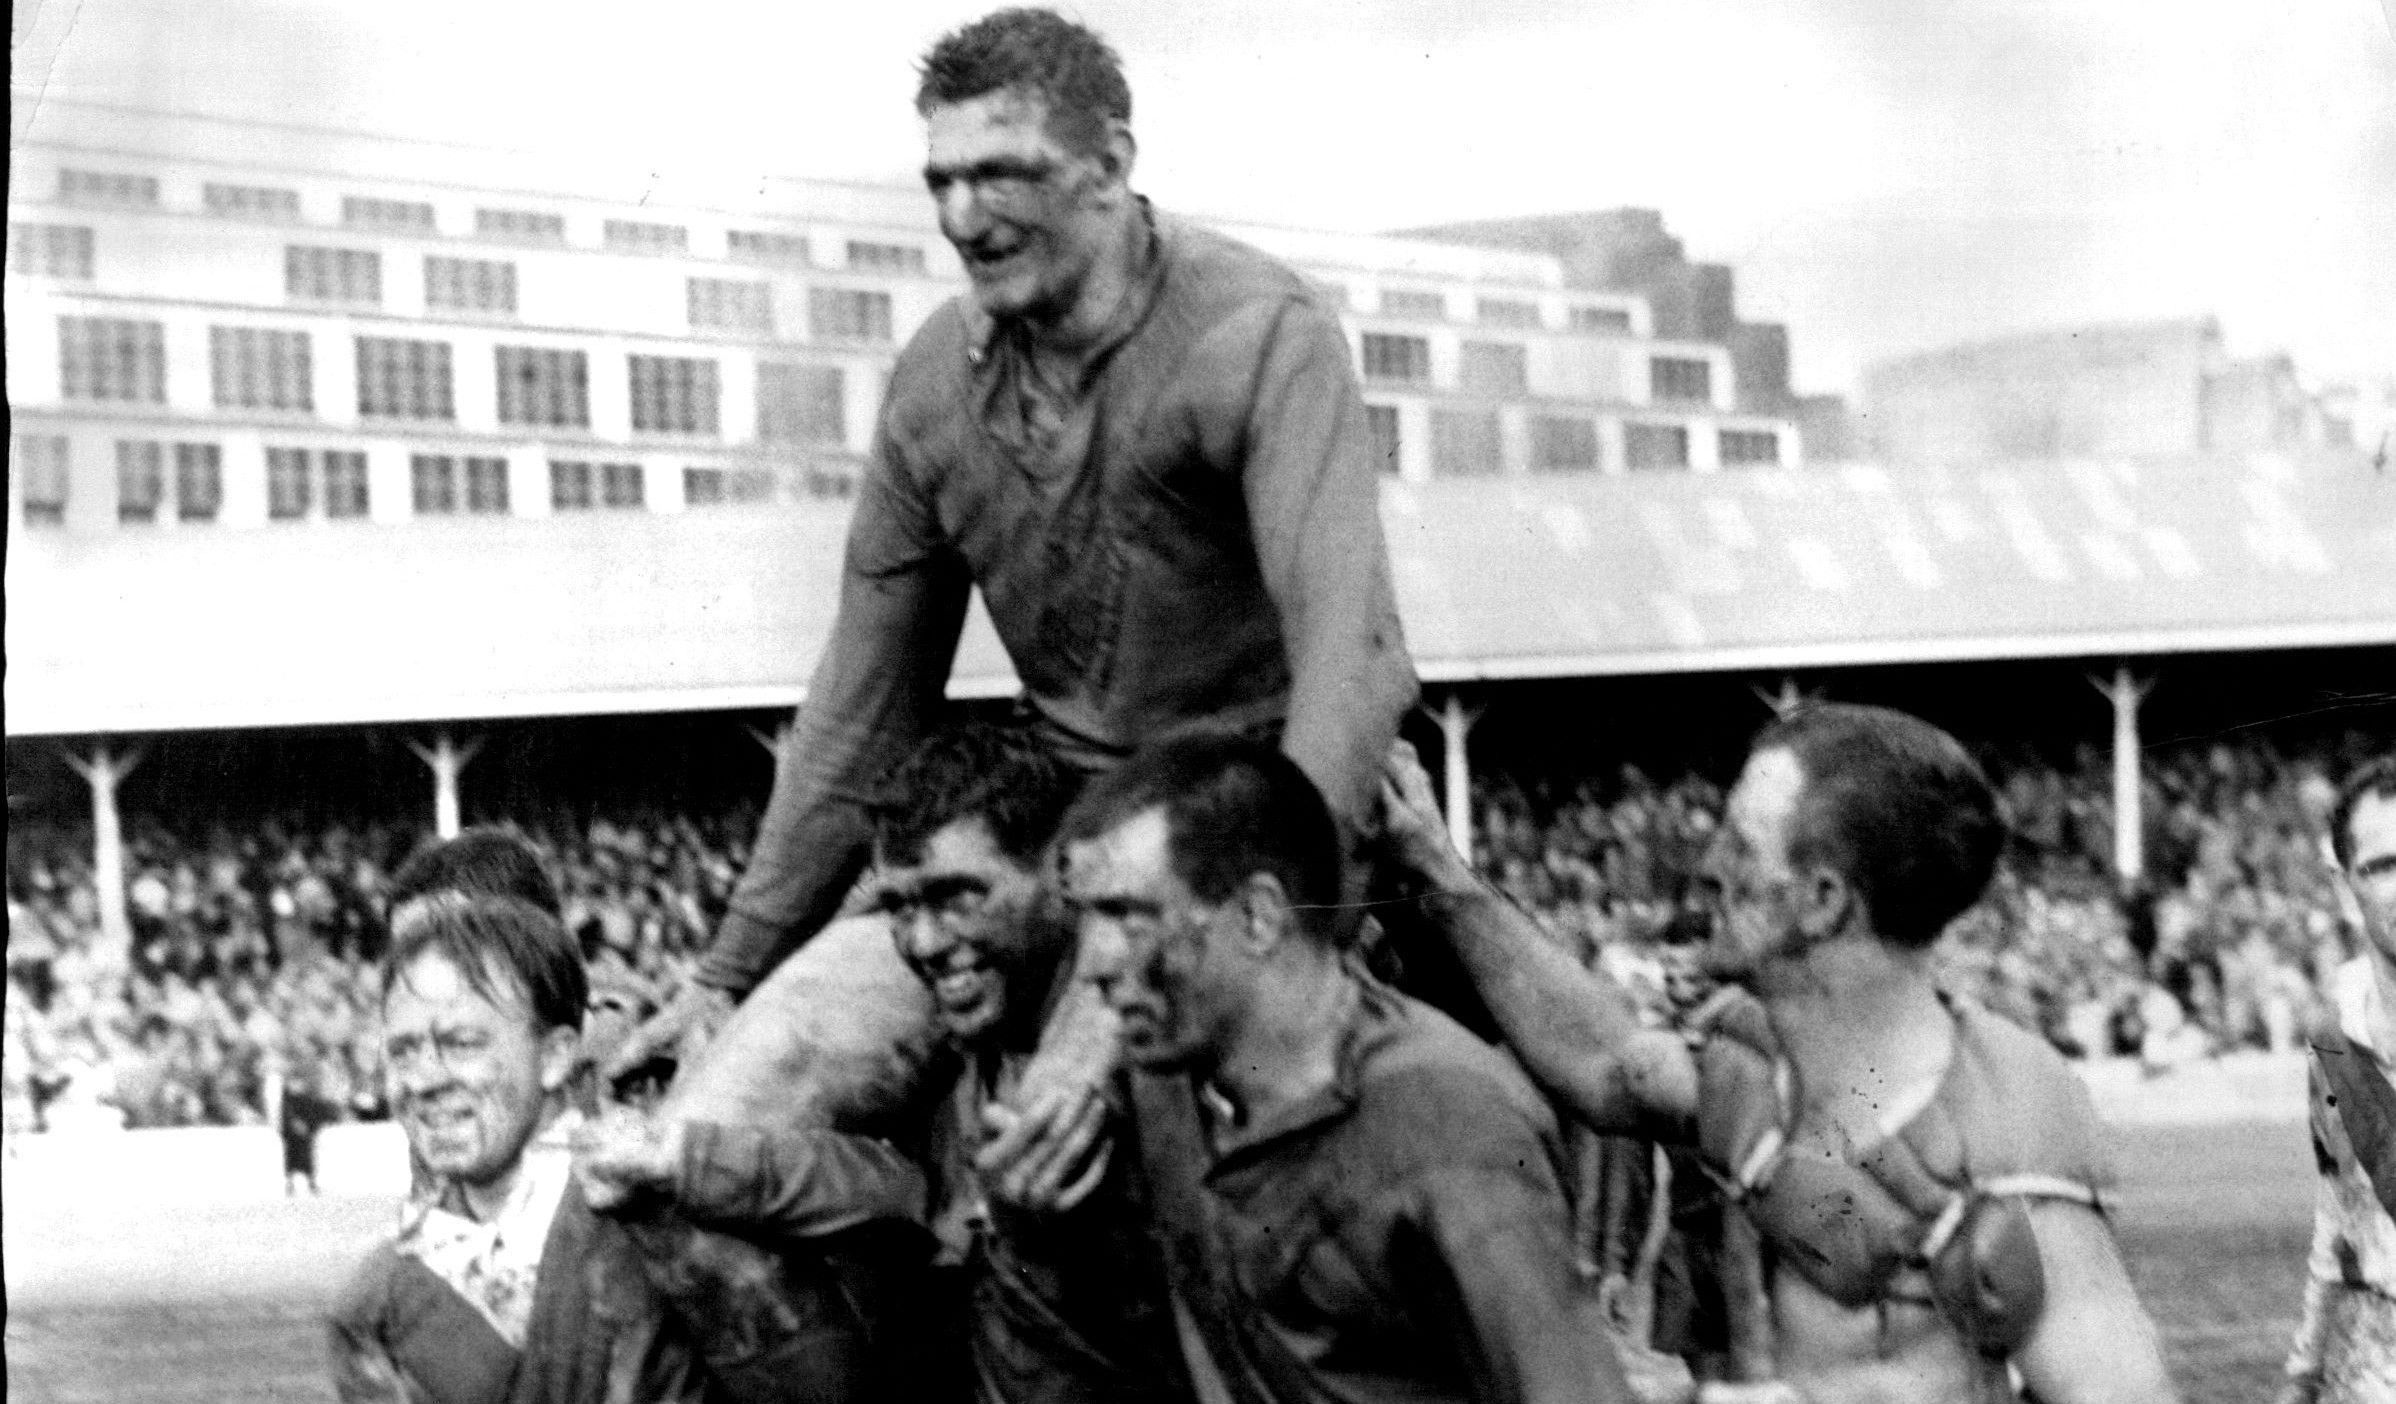 'Norm Provan was heroic that day': The epic act of bravery that kept St George's record premiership streak alive